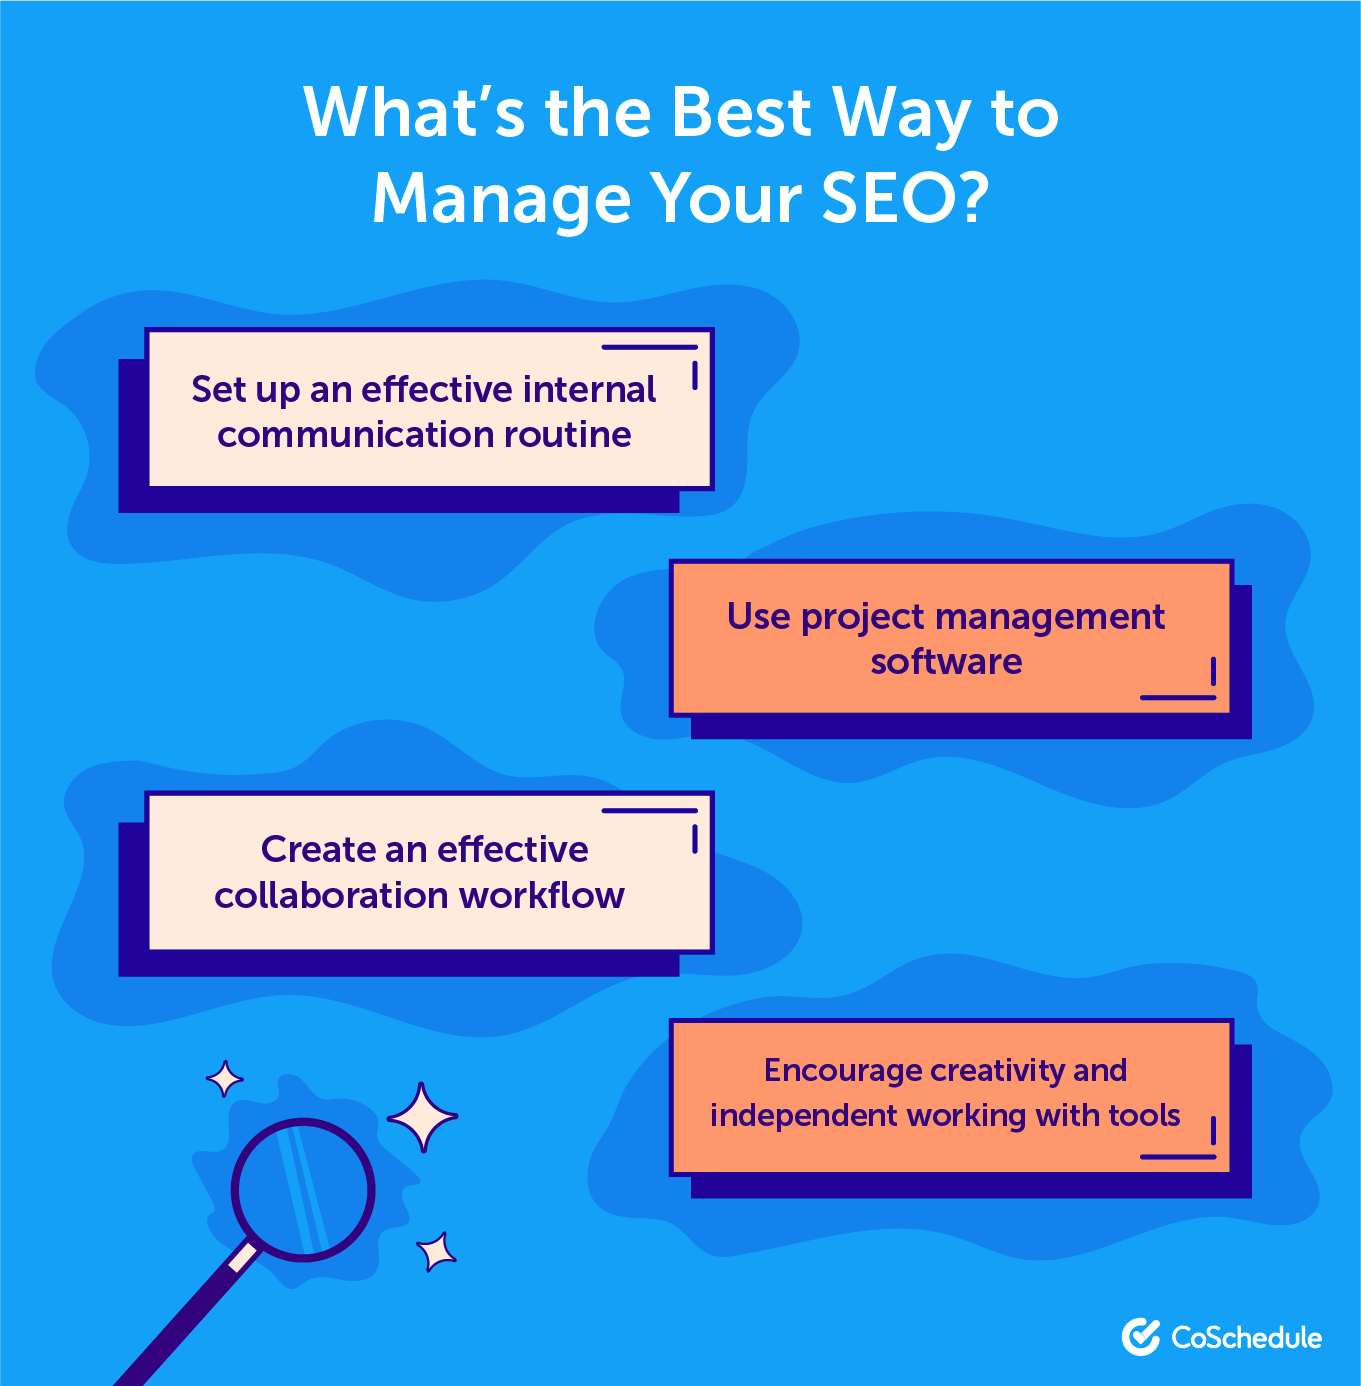 Best way to manage SEO